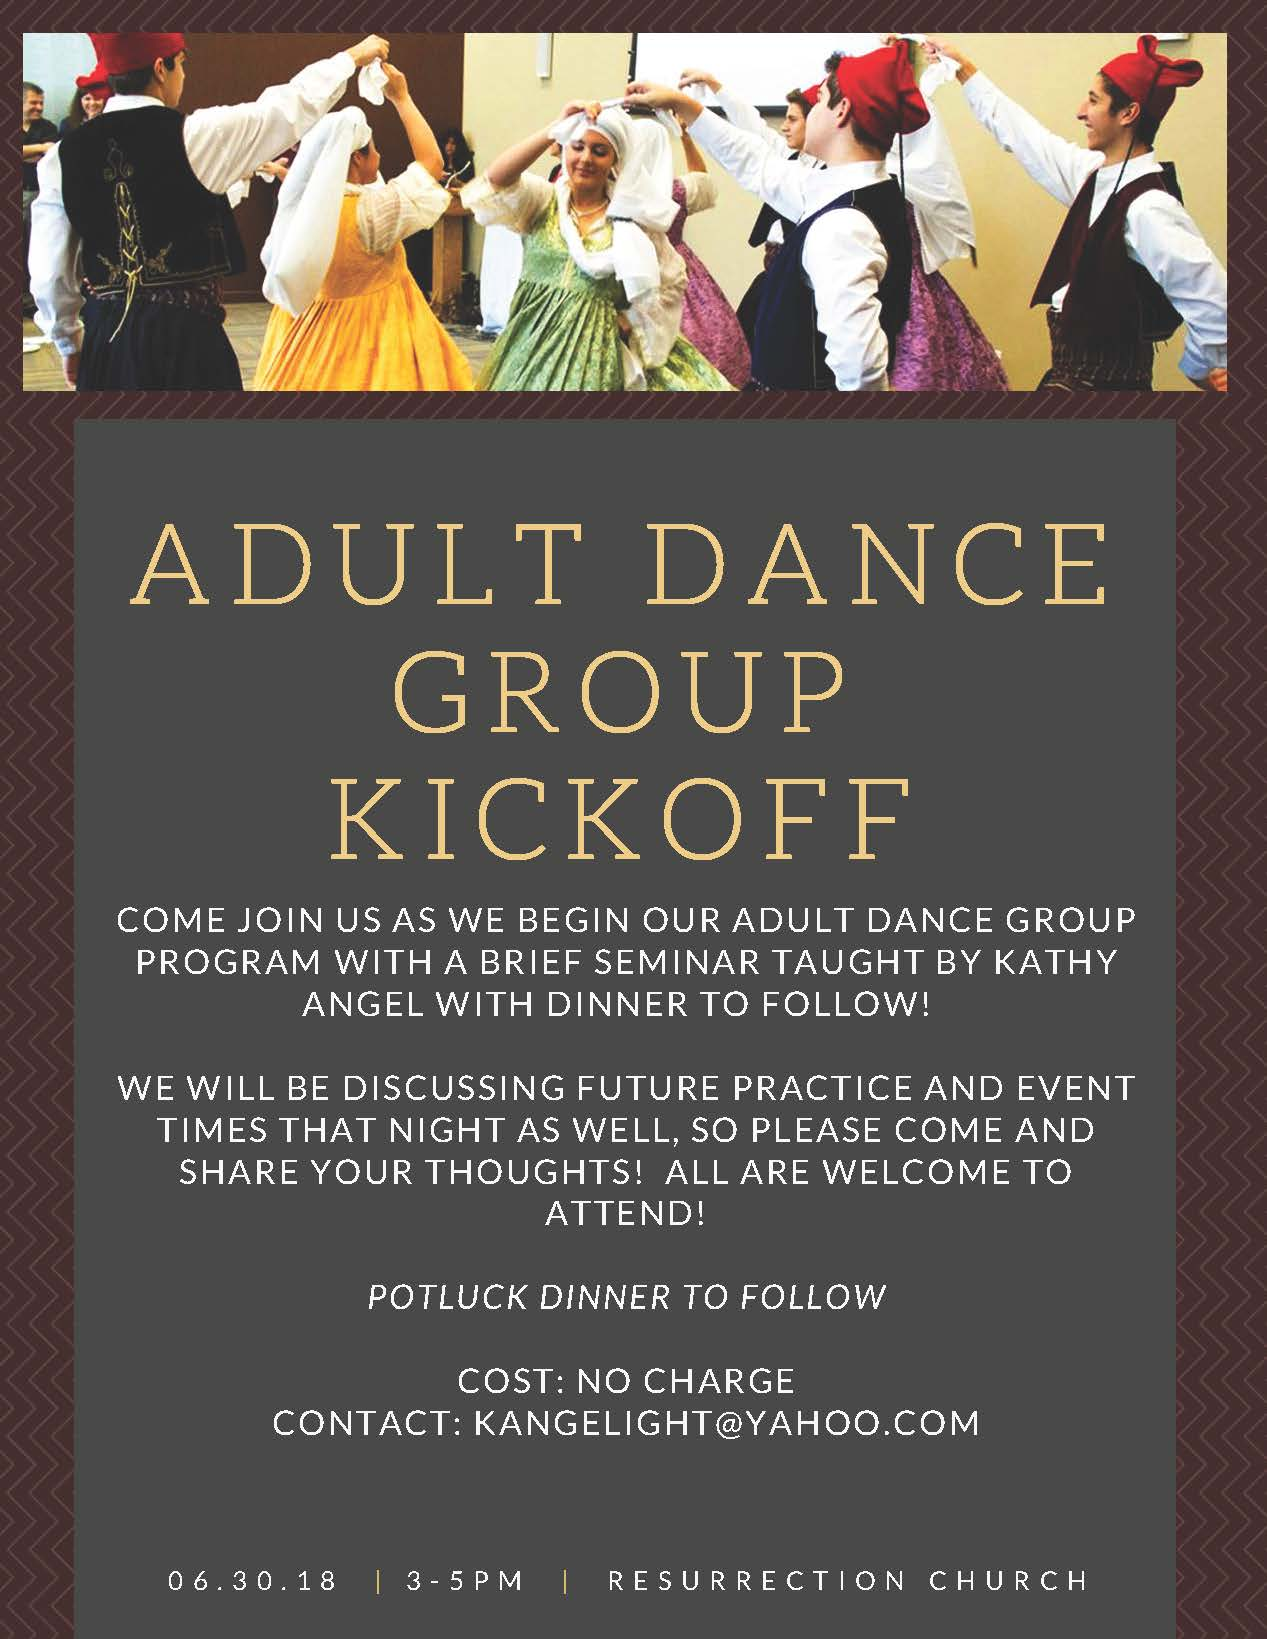 Adult Dance Group Kickoff